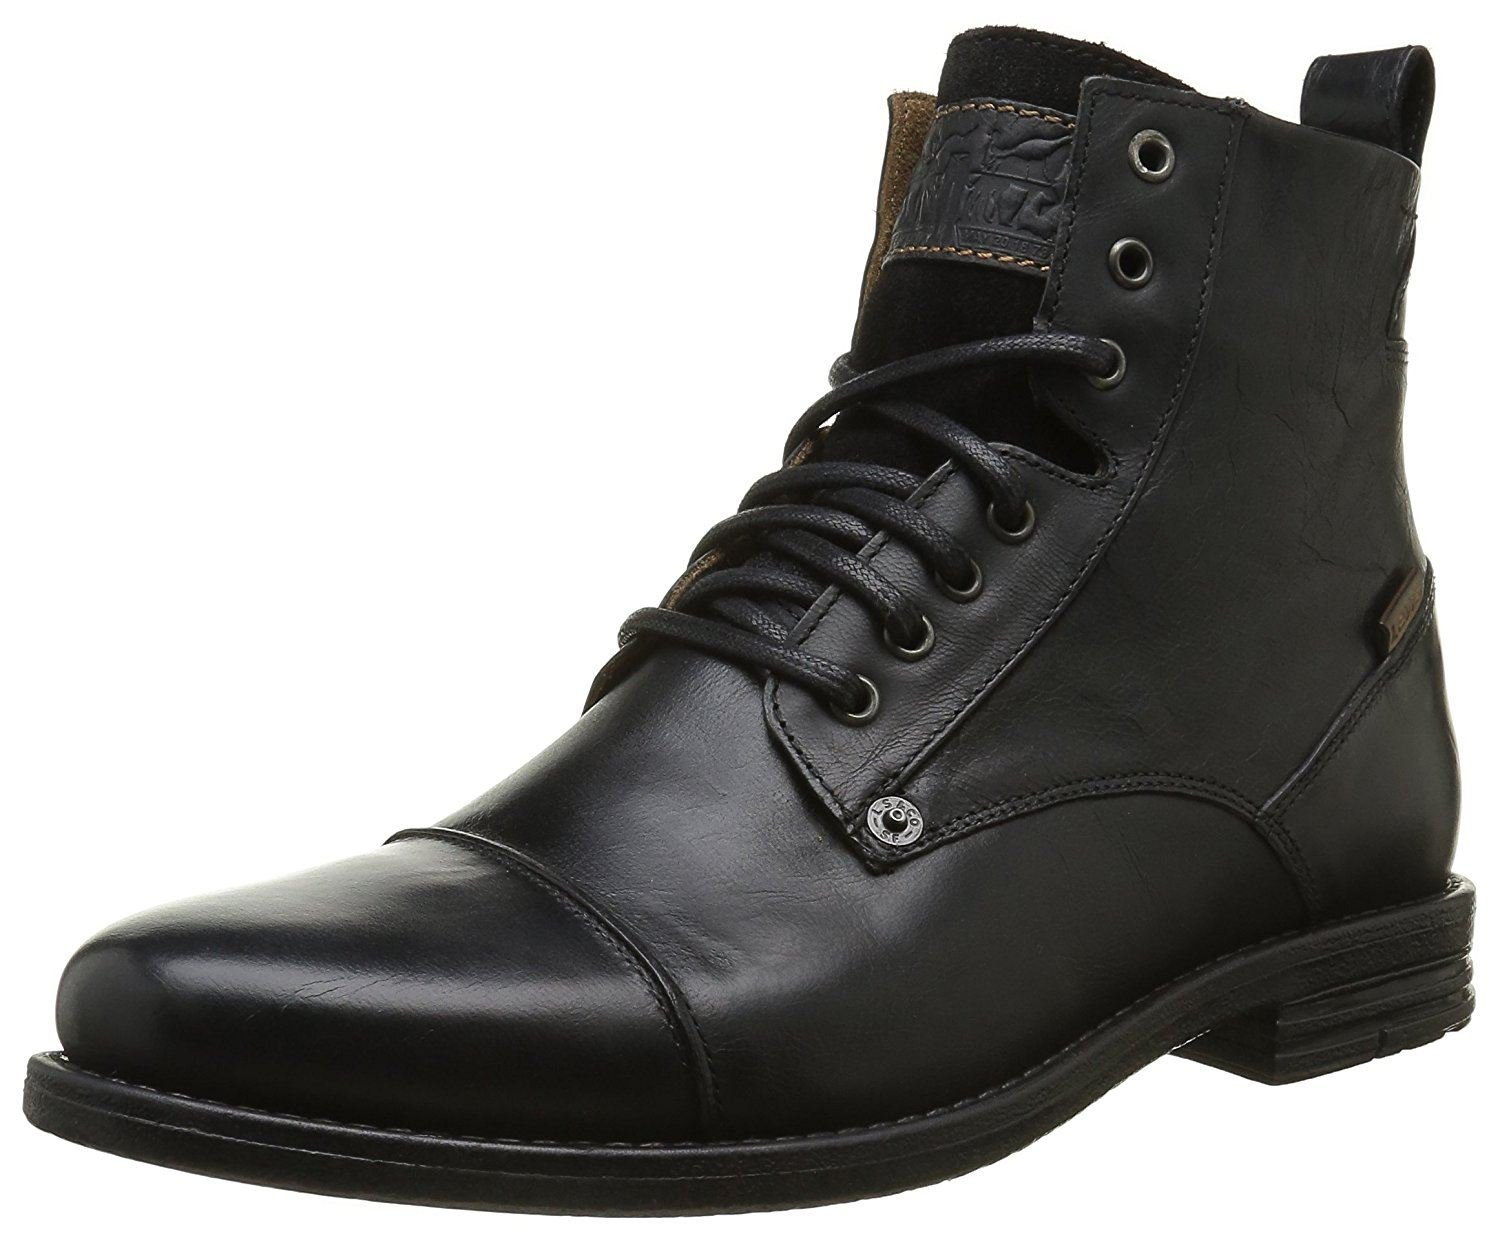 Levi's Emerson Black Mens Leather Mid Ankle Army Boots-43